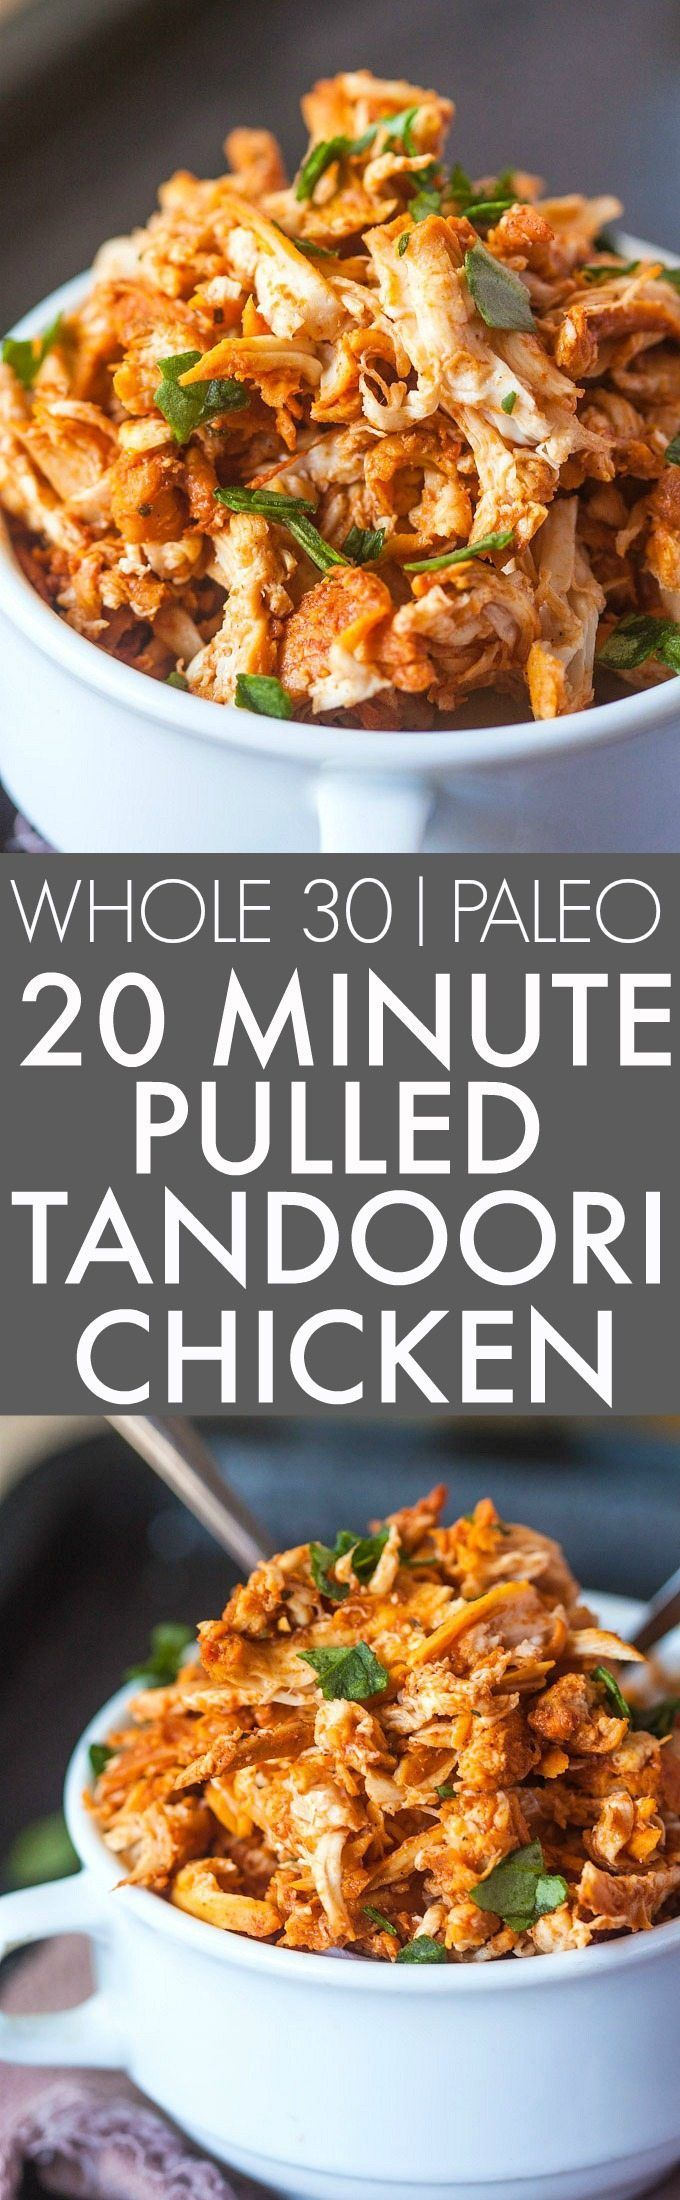 20 Minute Stovetop Pulled Tandoori Chicken (Whole 30, Paleo)- Whole30 Friendly juicy, moist and EASY pulled tandoori chicken perfect for a low carb, high protein and flavorful meal- Lunch, dinner and freezer friendly! {paleo, gluten free, whole30}- http://thebigmansworld.com